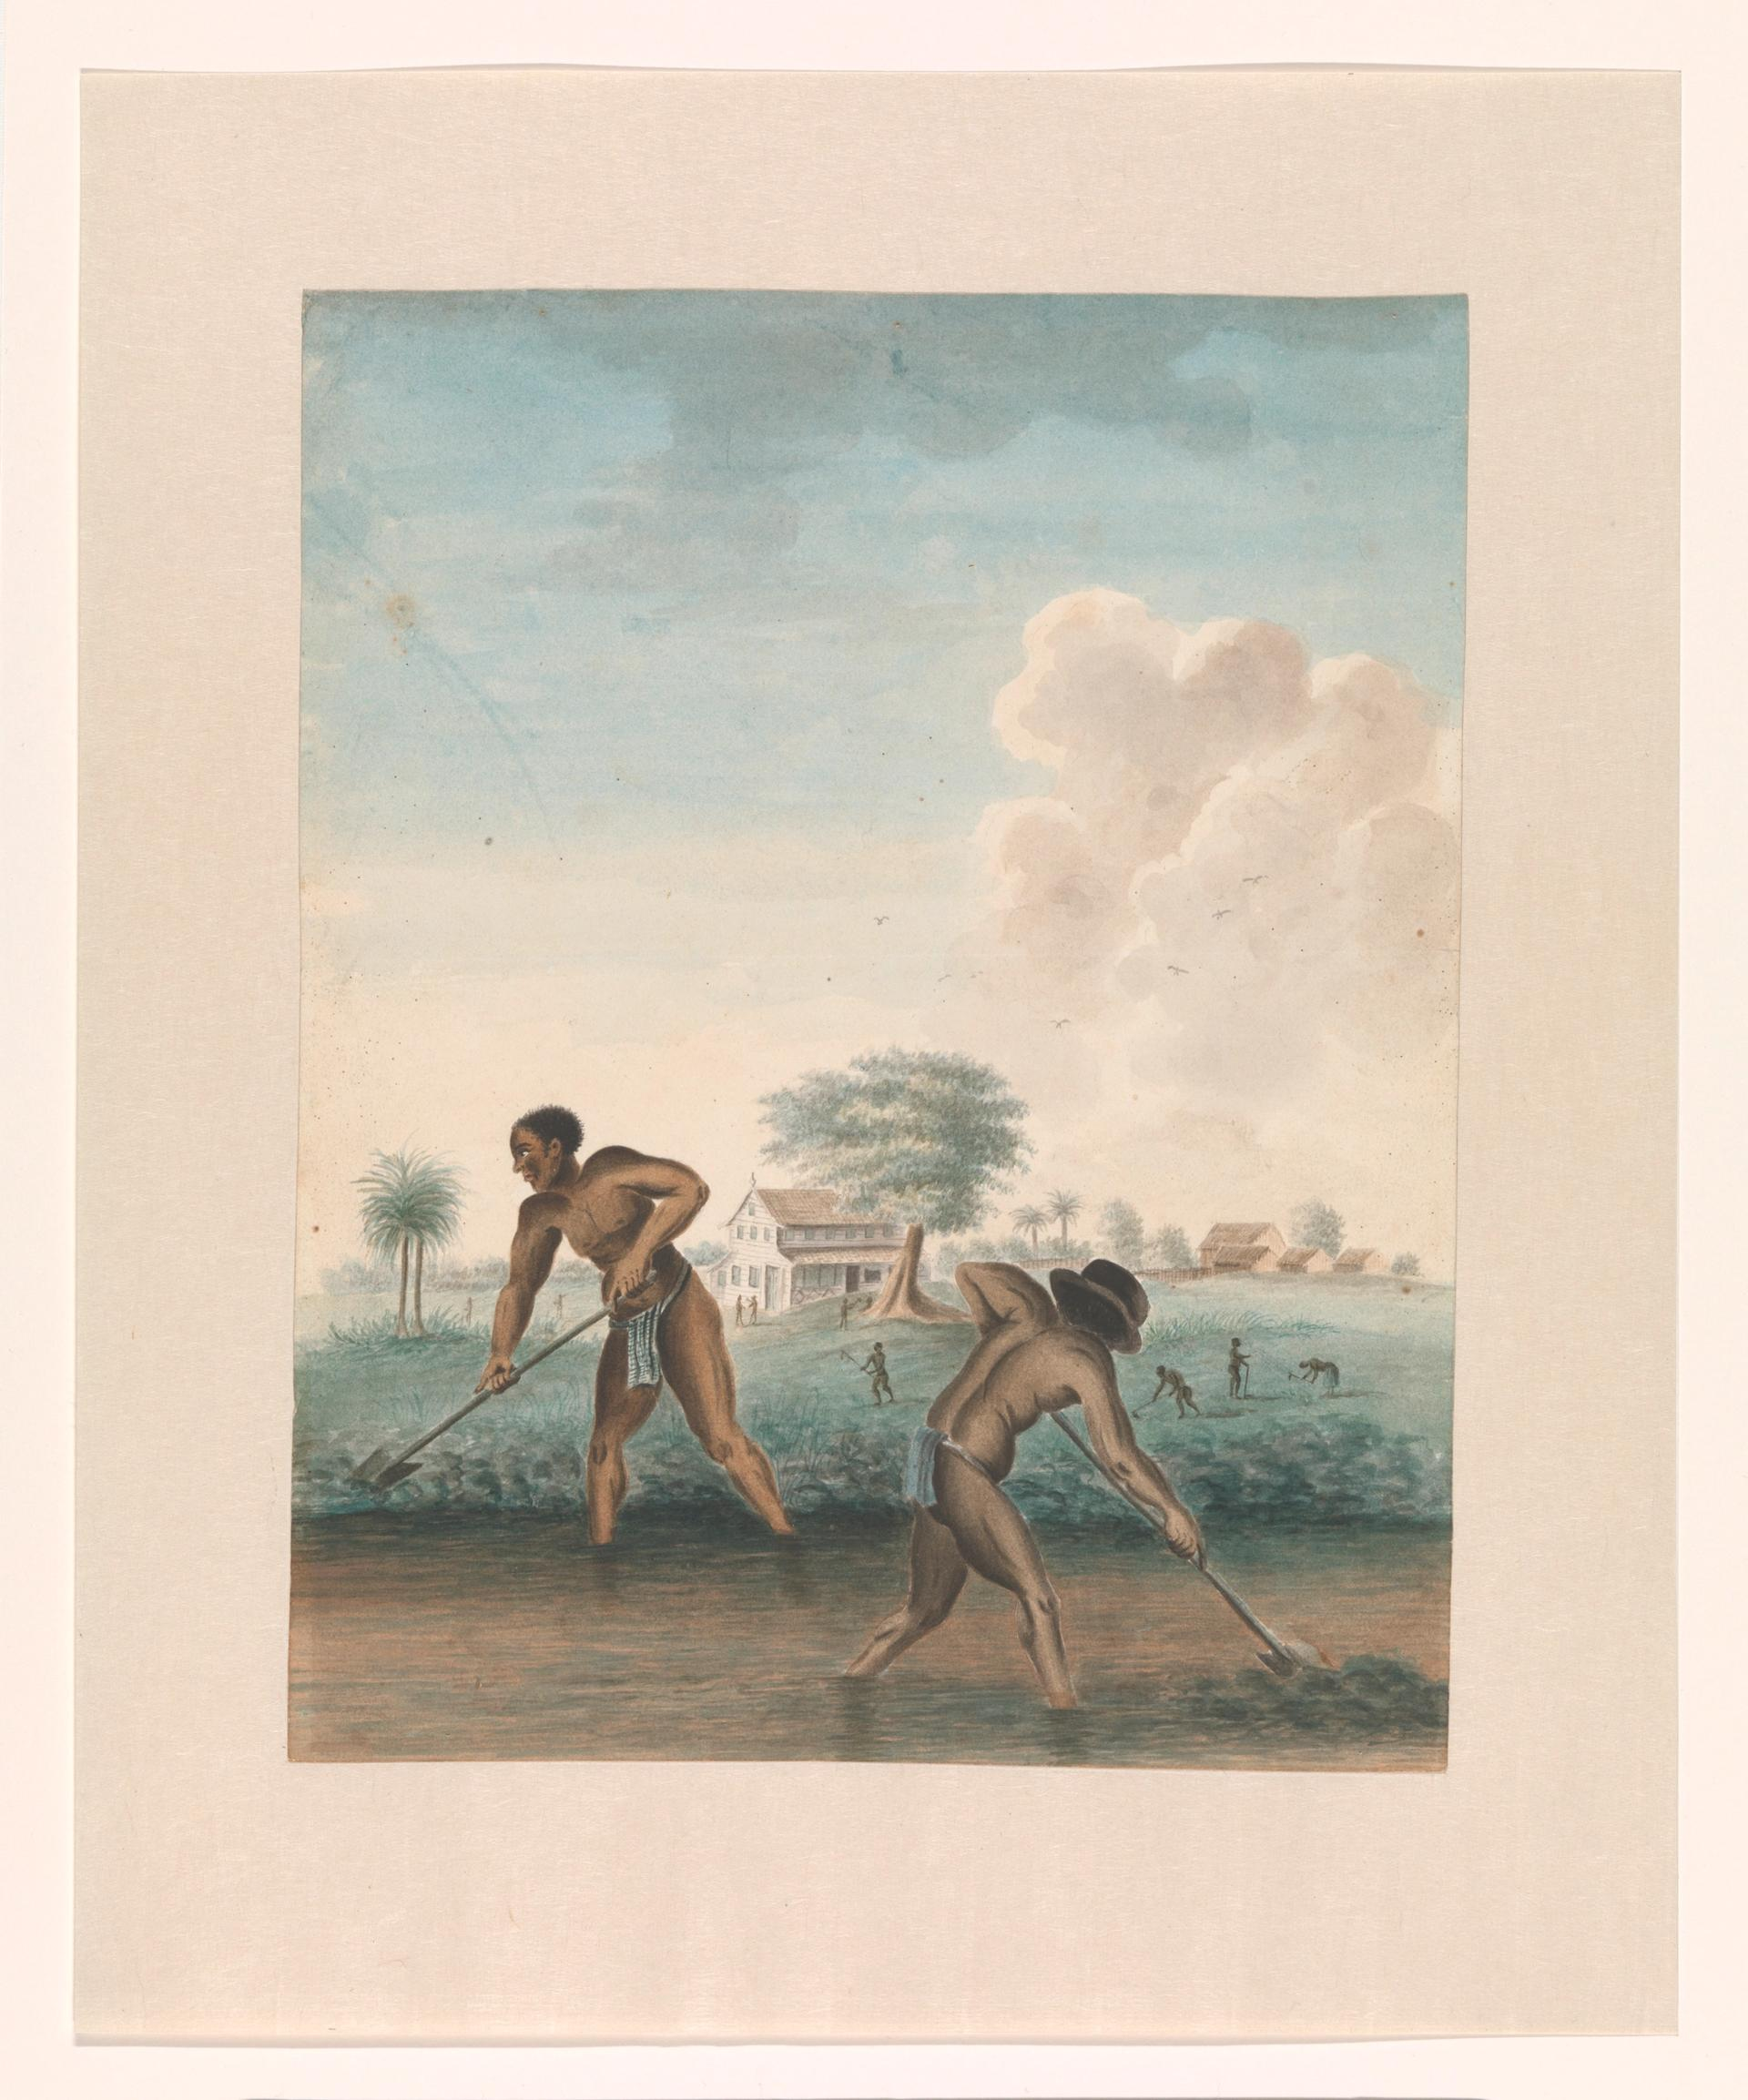 Enslaved man working on the fields by an unknown artist (around 1850) Courtesy of the Rijksmuseum. Purchased with support from the Johan Huizinga Fonds/ Rijksmuseum Fonds